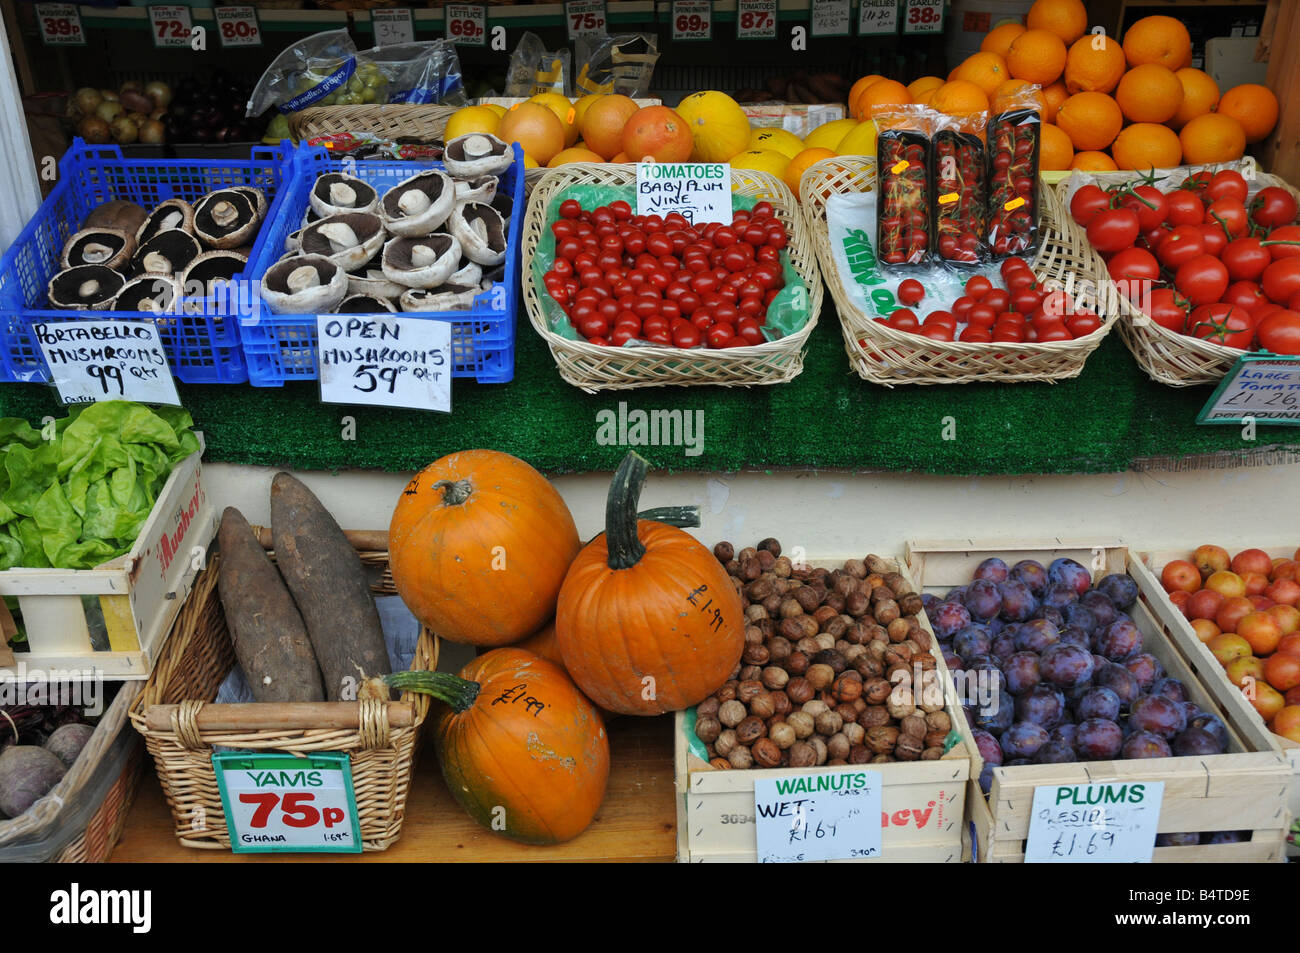 Fresh local grown fruit and vegetables on sale at the Barnstaple Pannier market in North Devon England. - Stock Image